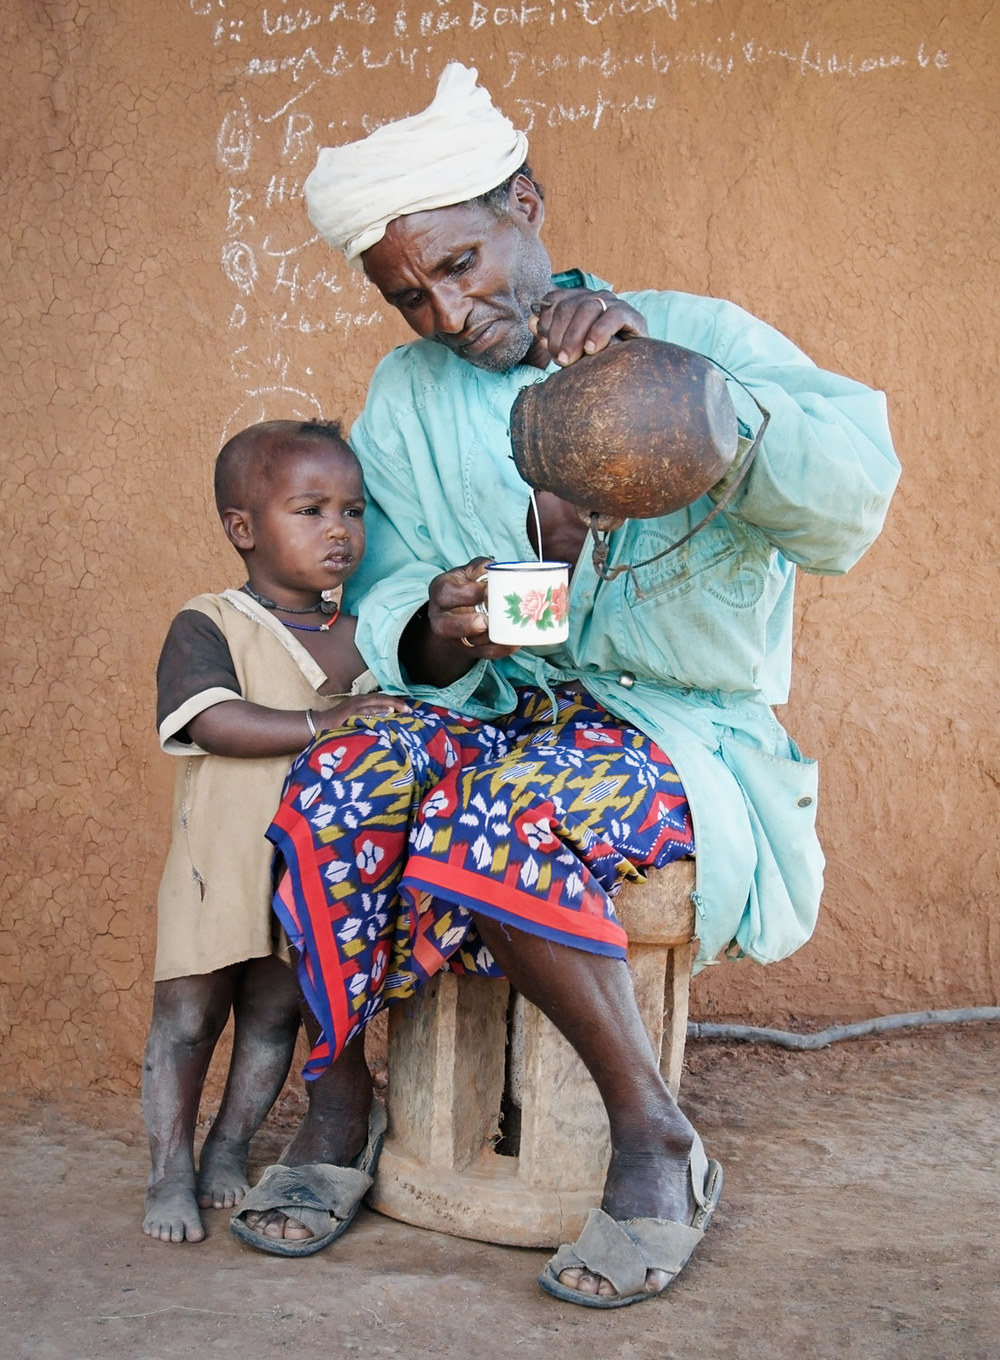 ethiopia-pastoralist-man-child-milk.jpg